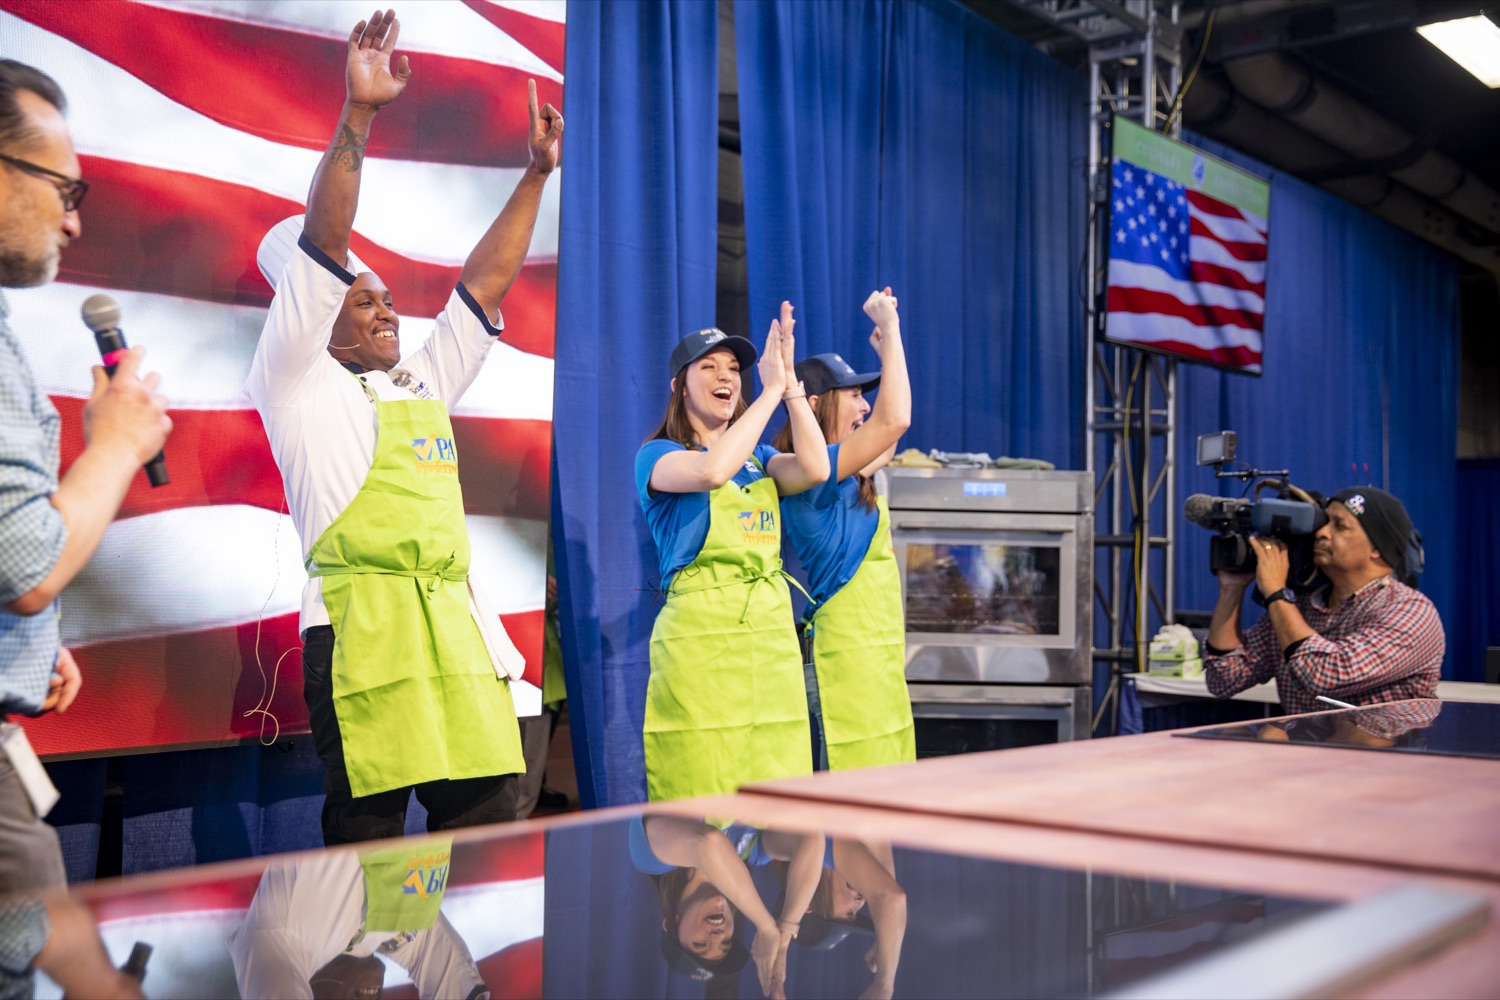 """<a href=""""http://filesource.abacast.com/commonwealthofpa/photo/17651_AGRIC_ARMY_NAVY_COOKOFF_CZ_01.jpg"""" target=""""_blank"""">⇣Download Photo<br></a>Culinary Specialist First Class Marlon ONeil Haughton celebrates his victory with Sous Chefs Corinne Lillis and Shannon Murphy of WGAL Channel 8 at the 2020 Army vs. Navy Cook-Off in Harrisburg on January 9, 2020."""